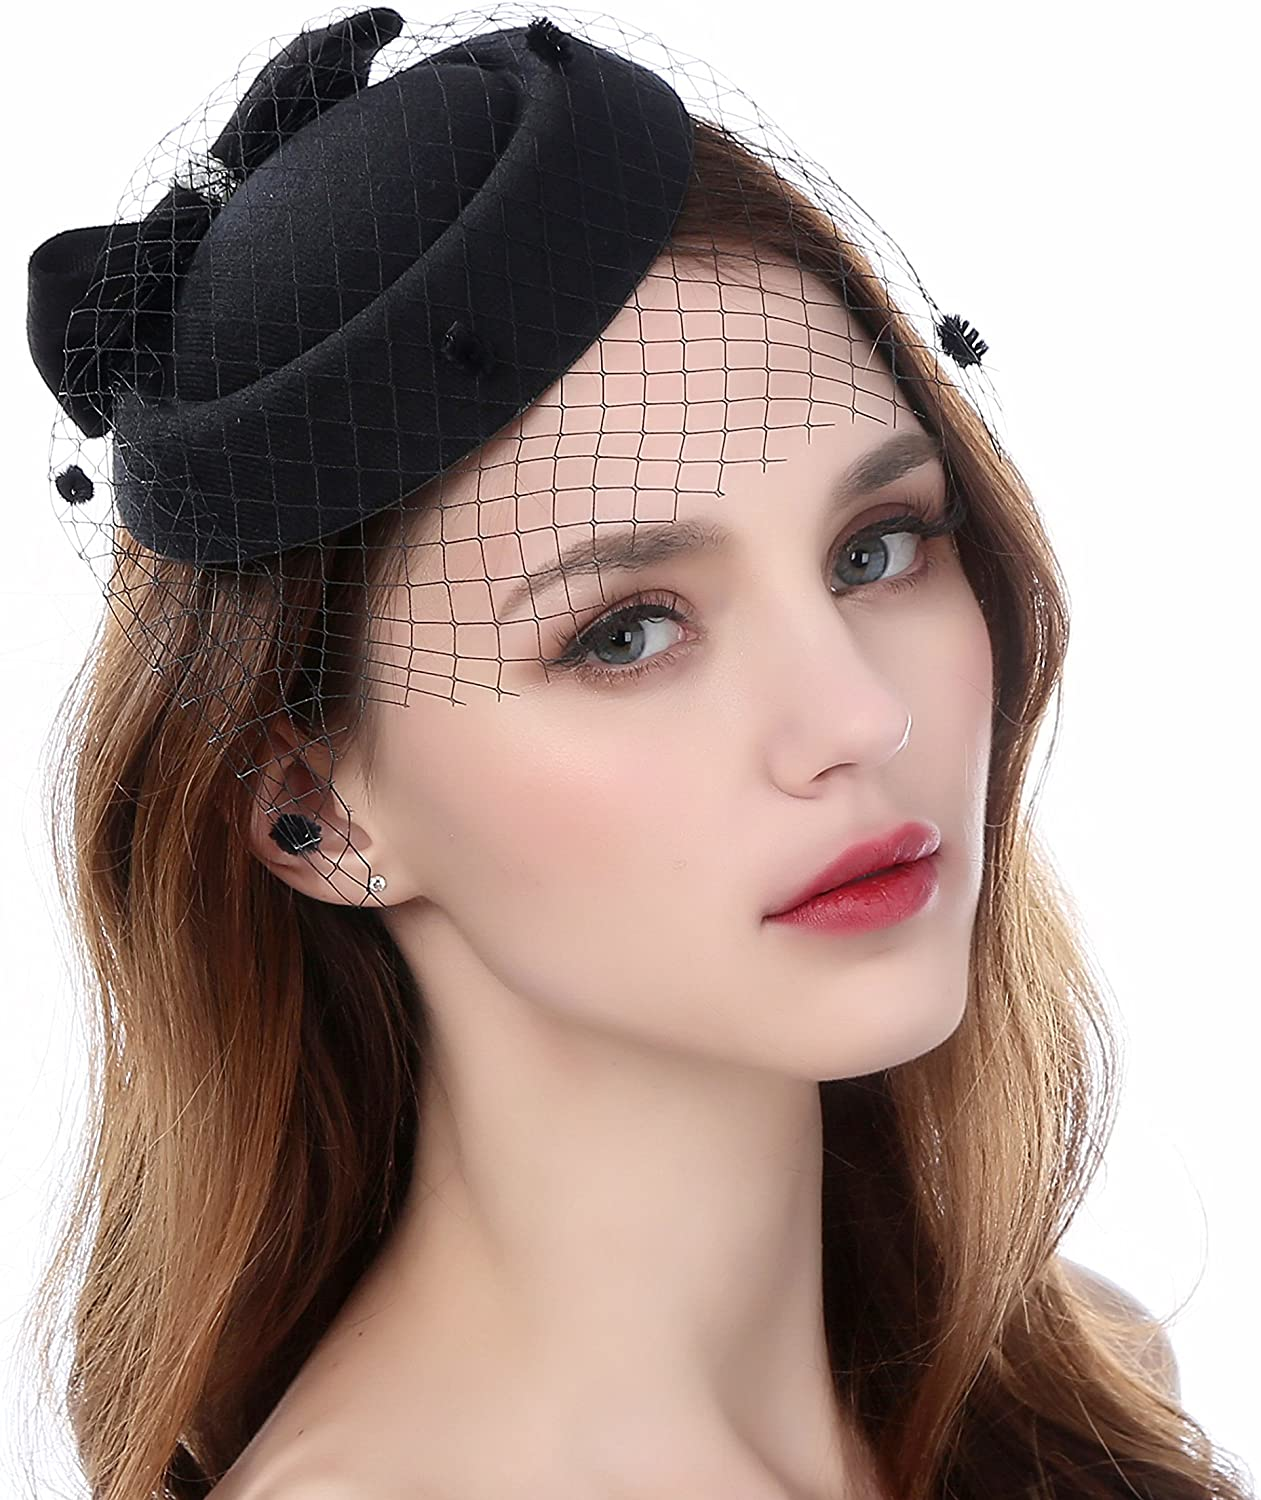 Dallas Mall Zivyes Fascinator Hats Free Shipping New for Women Pillbox Veil Hat Headband with